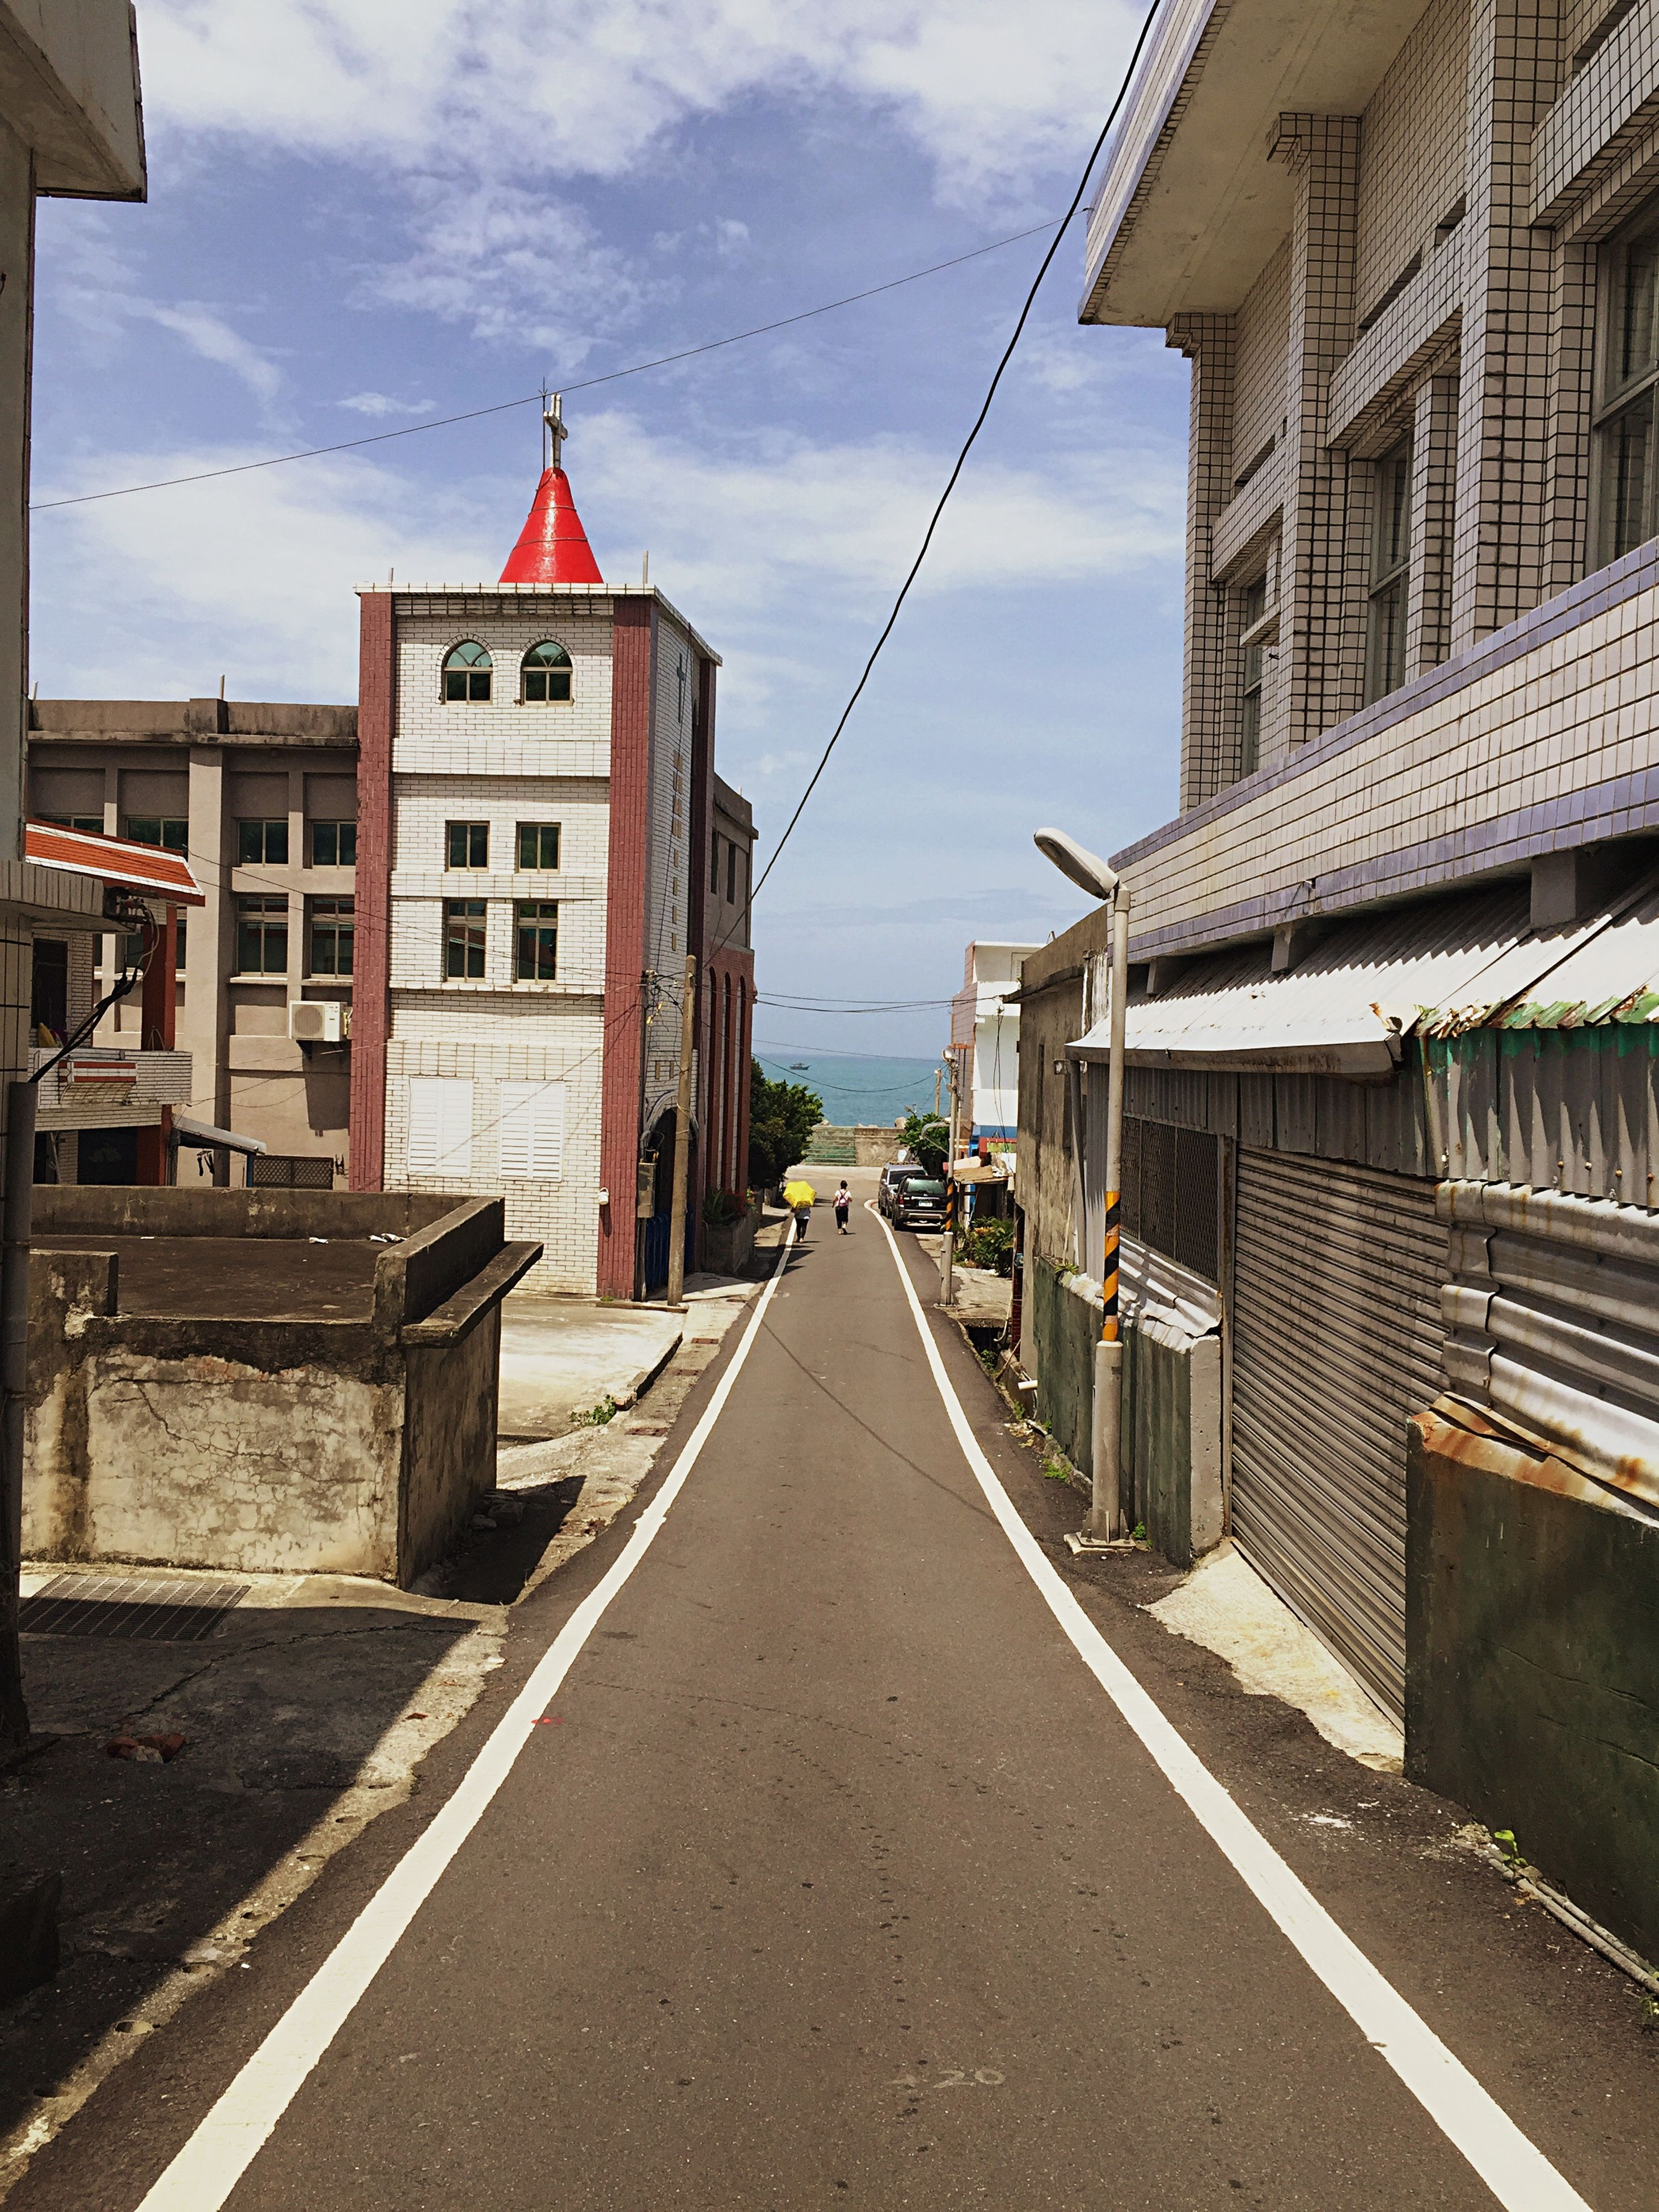 building exterior, architecture, built structure, the way forward, sky, diminishing perspective, residential structure, vanishing point, street, cloud, cloud - sky, house, residential building, road, city, building, day, narrow, outdoors, town